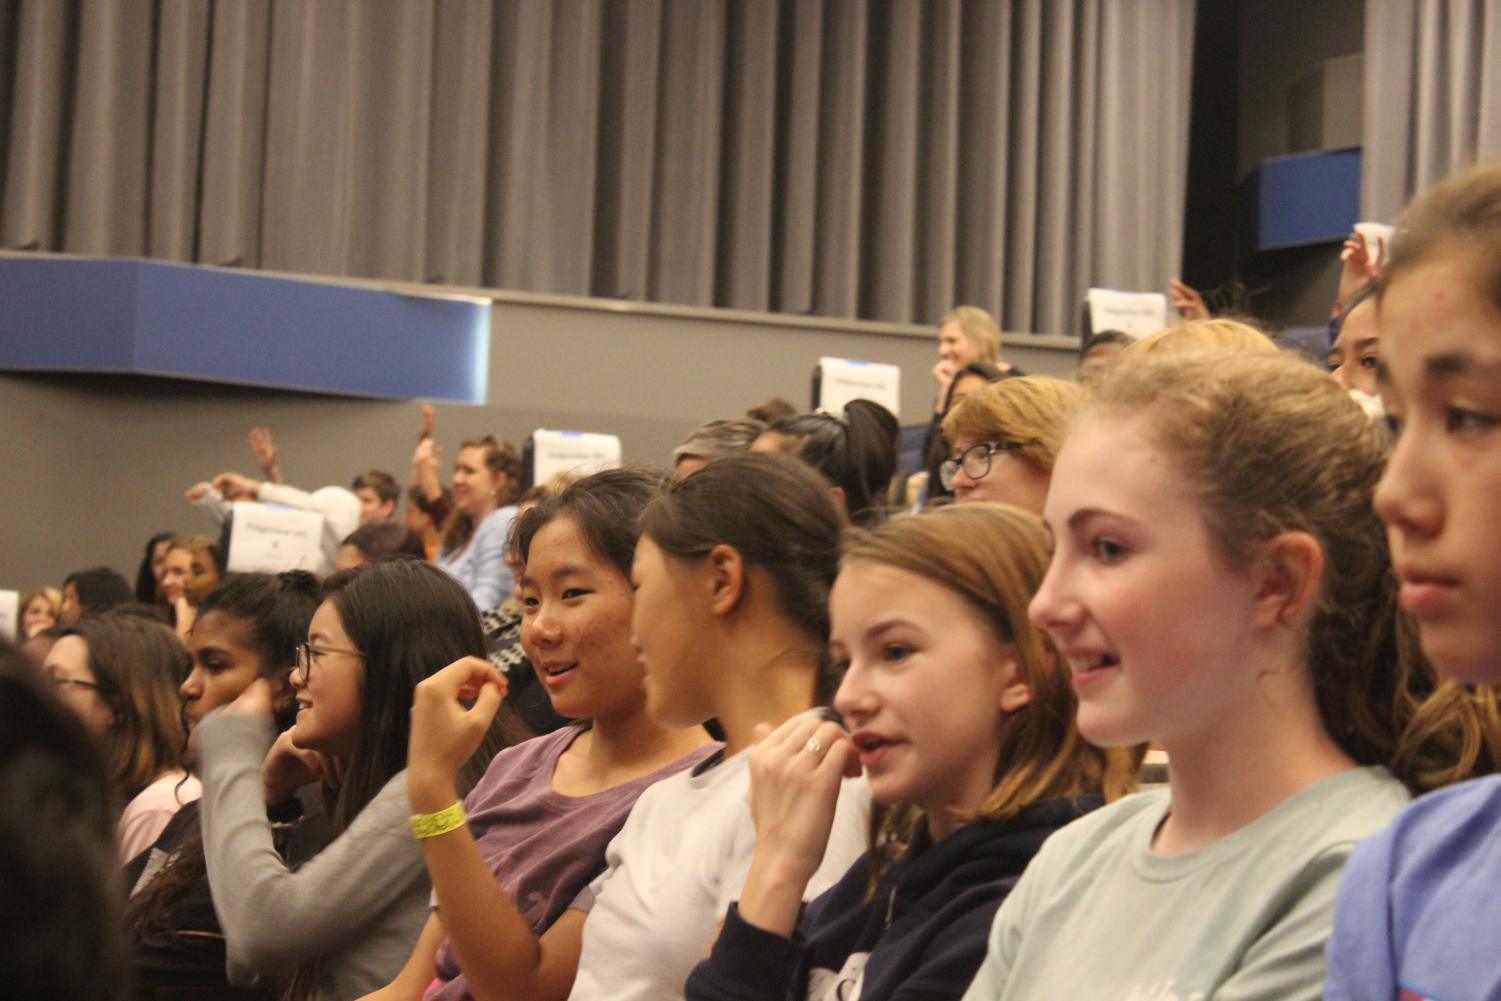 Students+engaged+and+excited+by+Reynolds+speaking